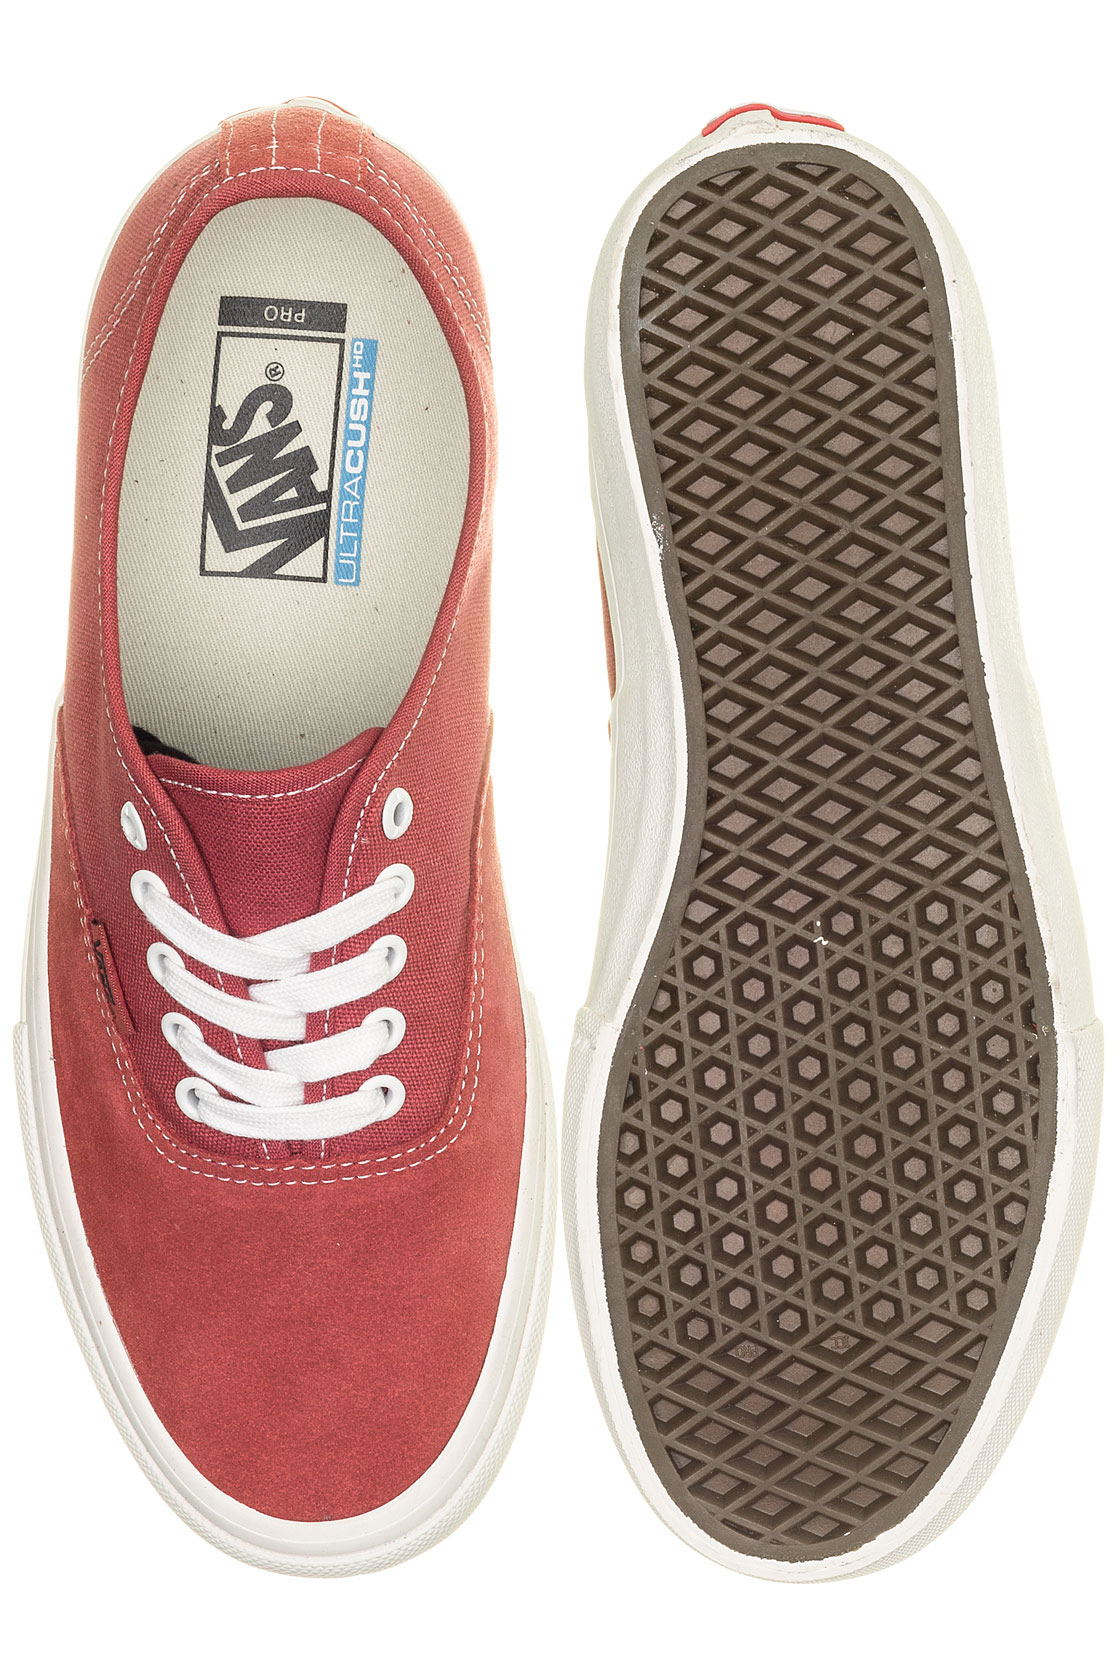 Chaussuremineral Authentic Pro Red Marshmallow Vans JcF1lKT